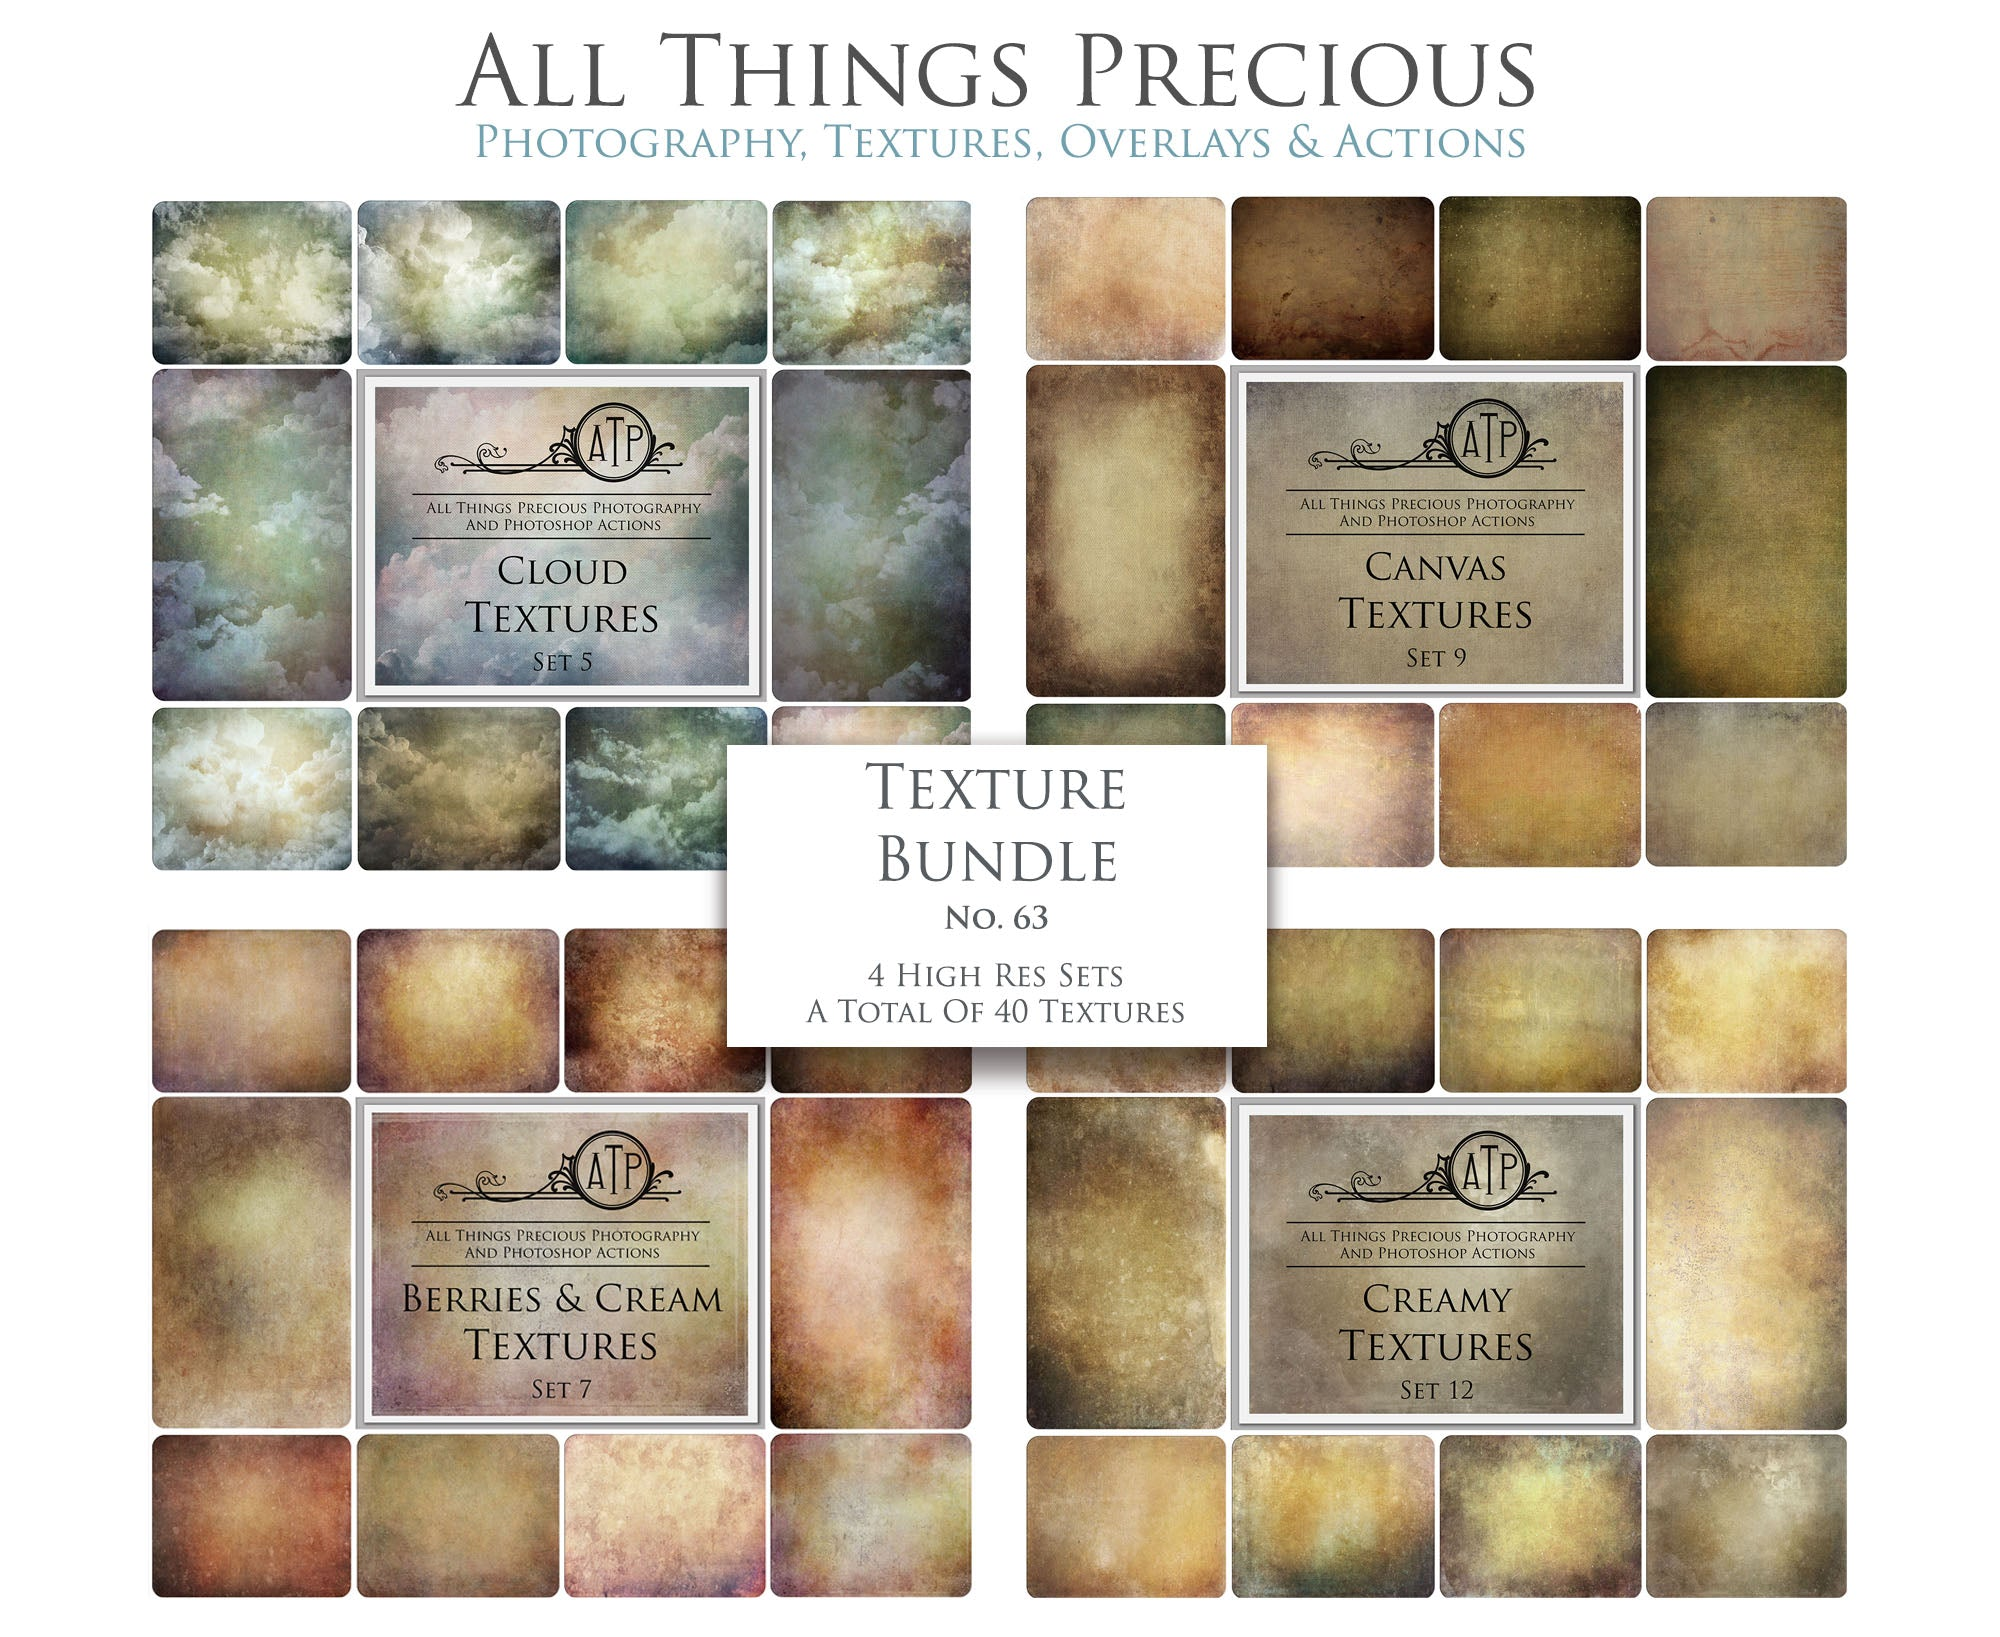 TEXTURE BUNDLE / No. 63